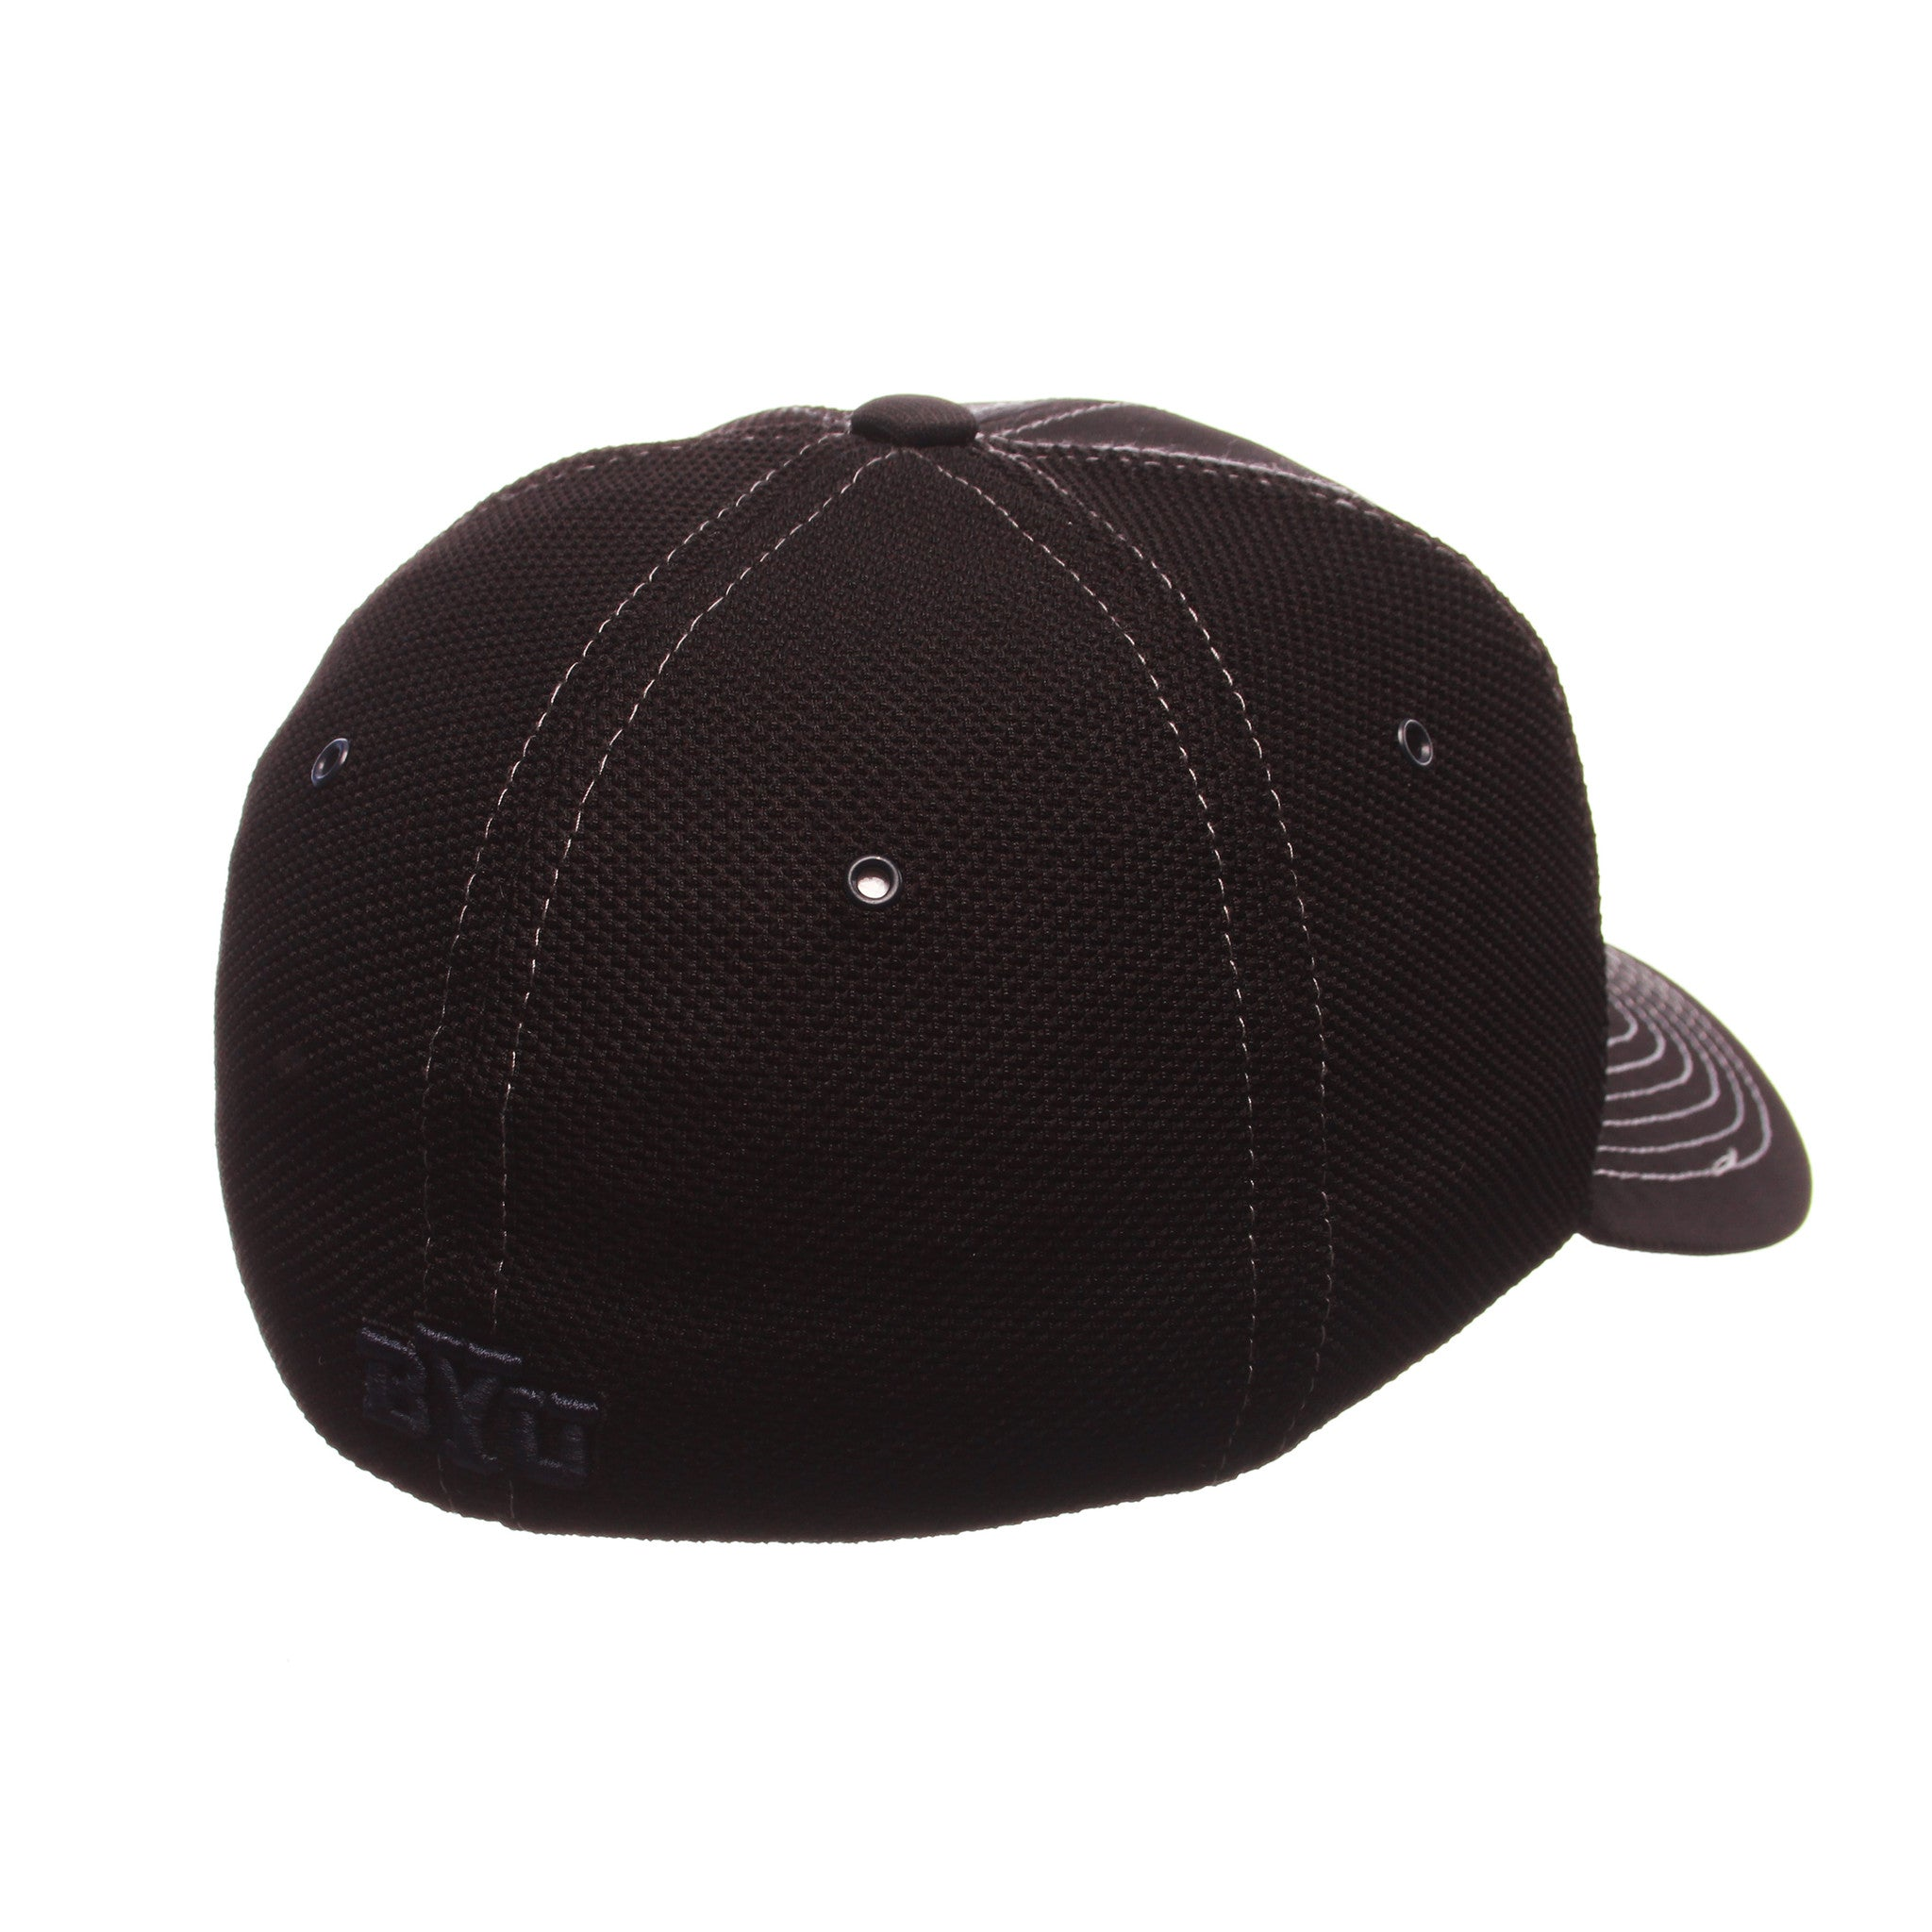 Brigham Young Black Friday Slant - Zhats - Zephyr Hats